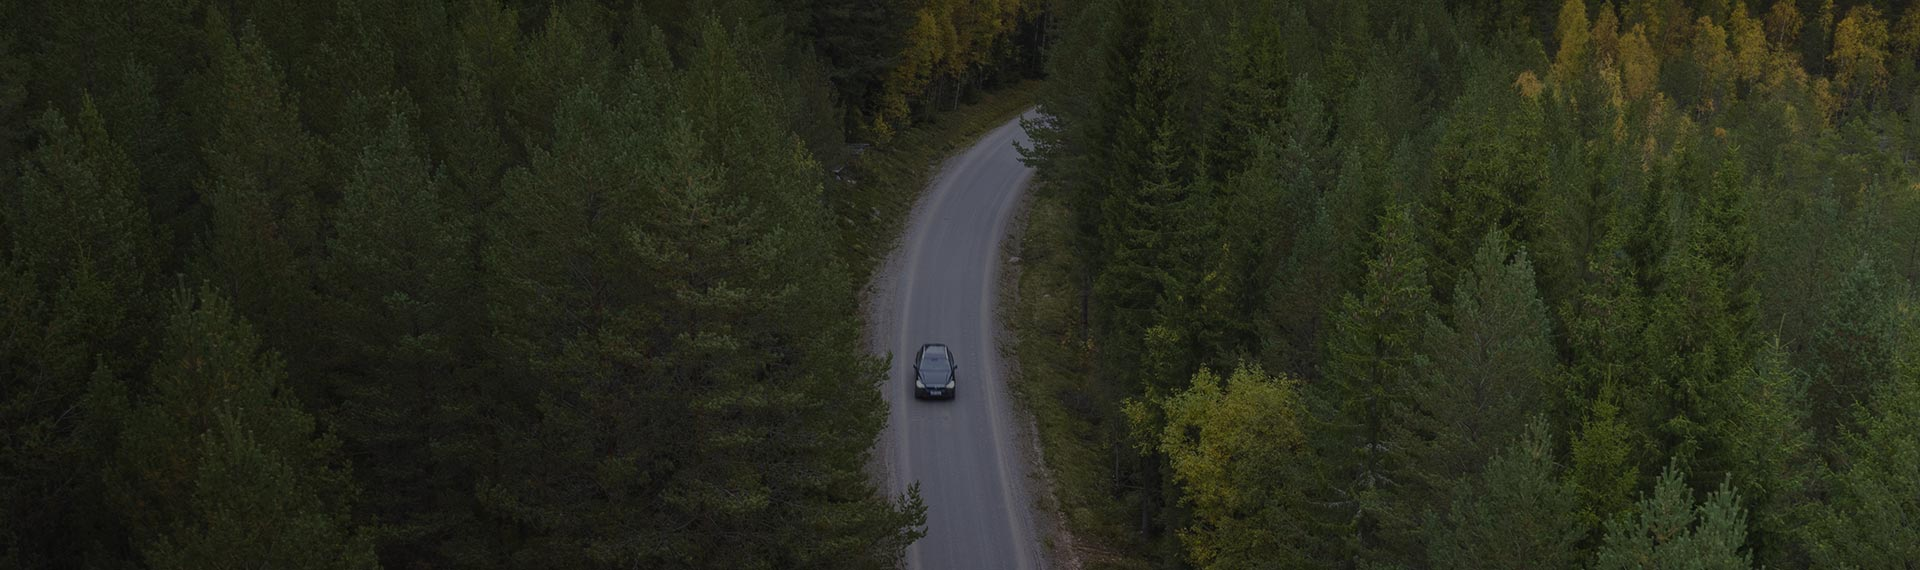 Car driving on a road in the forest